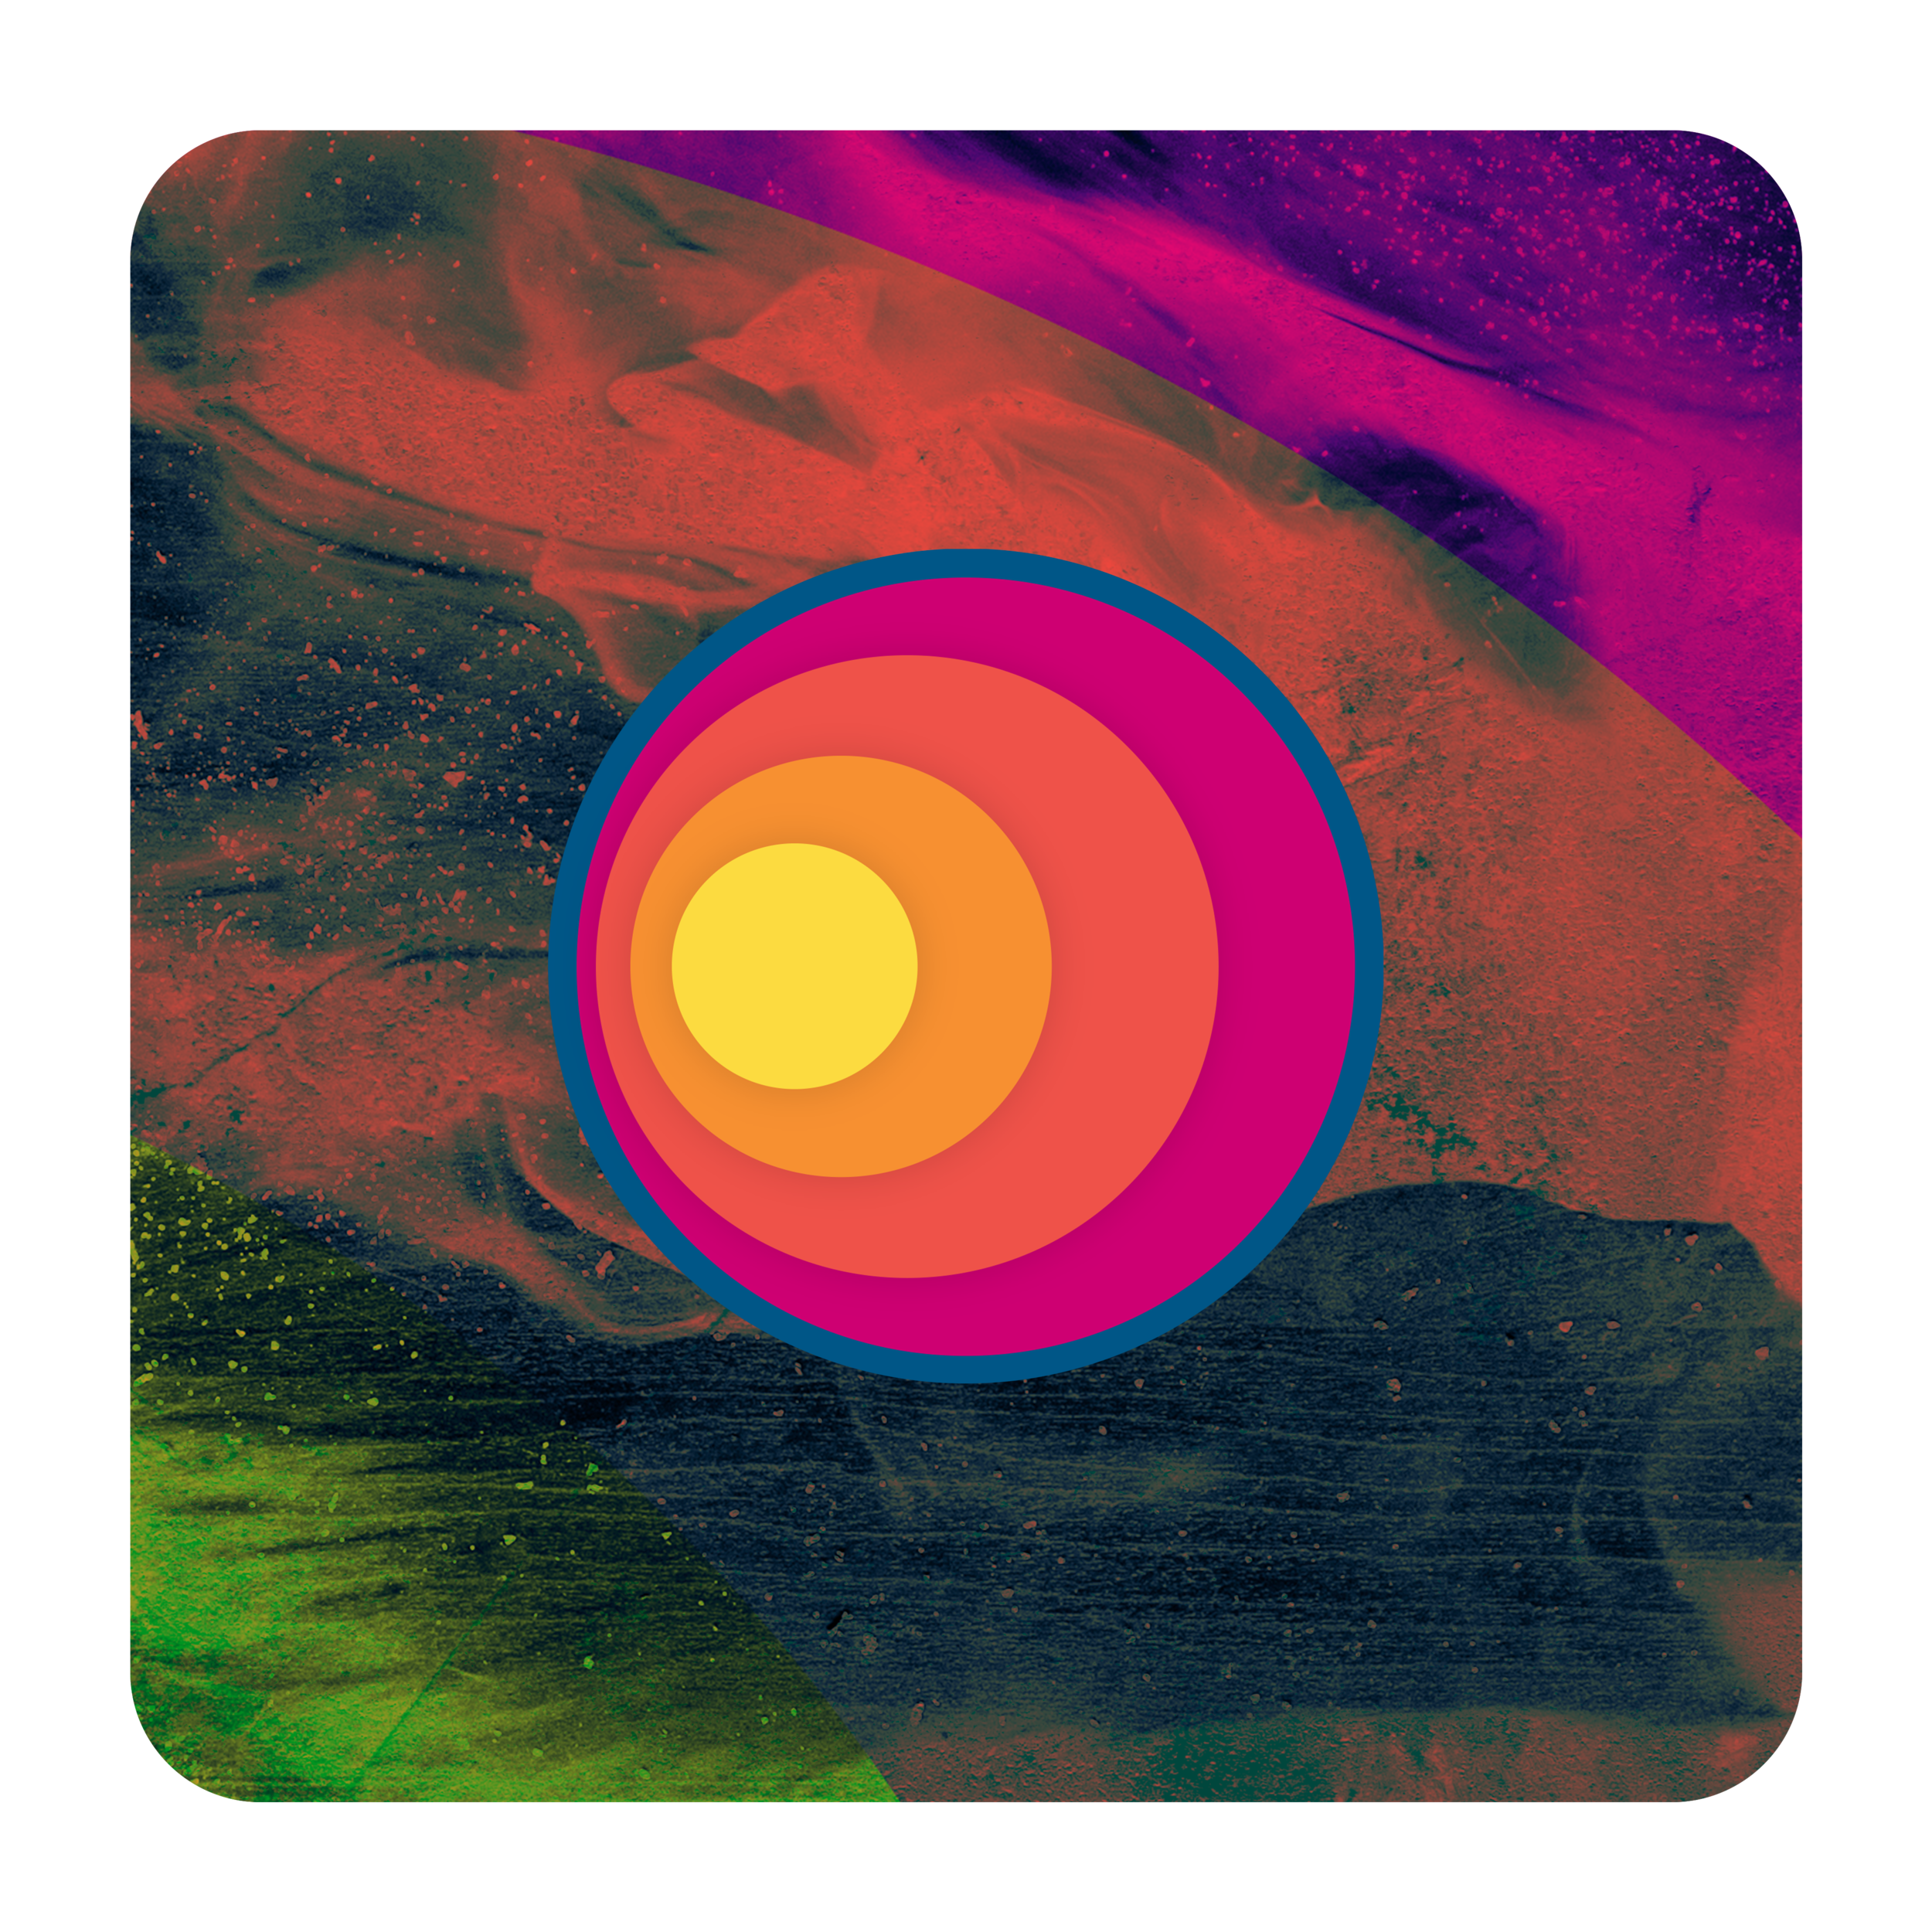 app_icon1.png